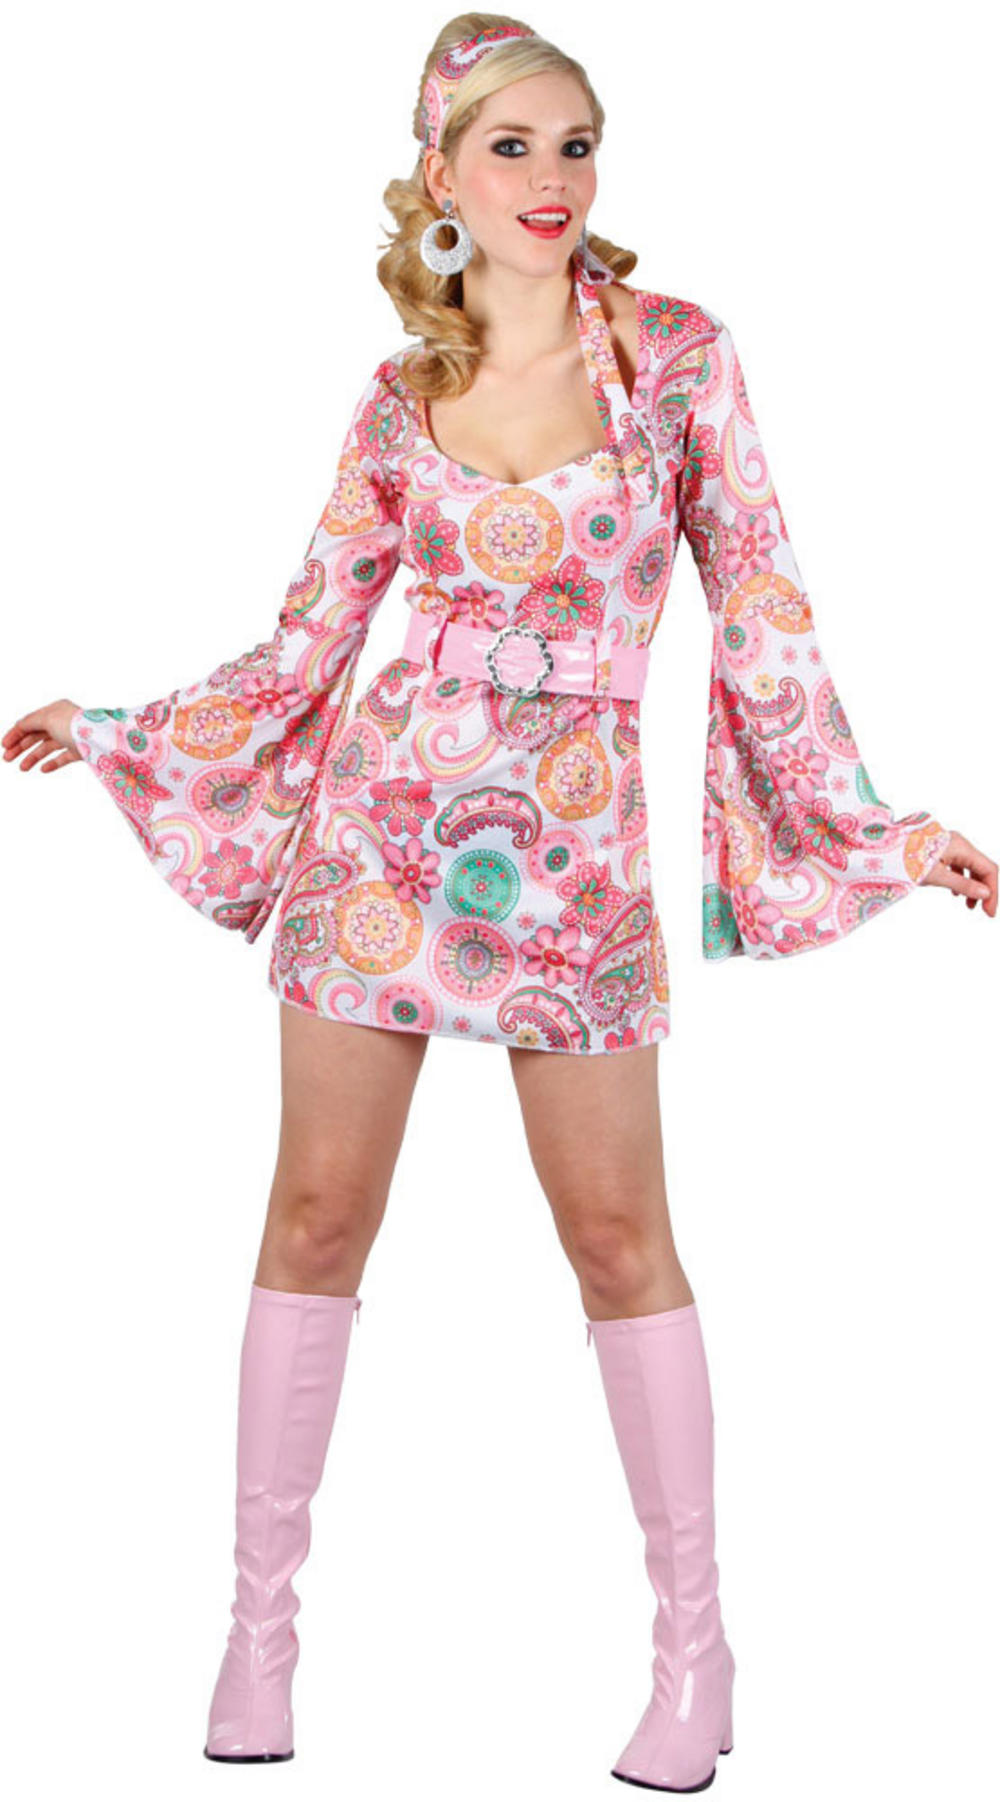 Pink Flower Retro Dancer Costume Ladies Costumes Mega 60